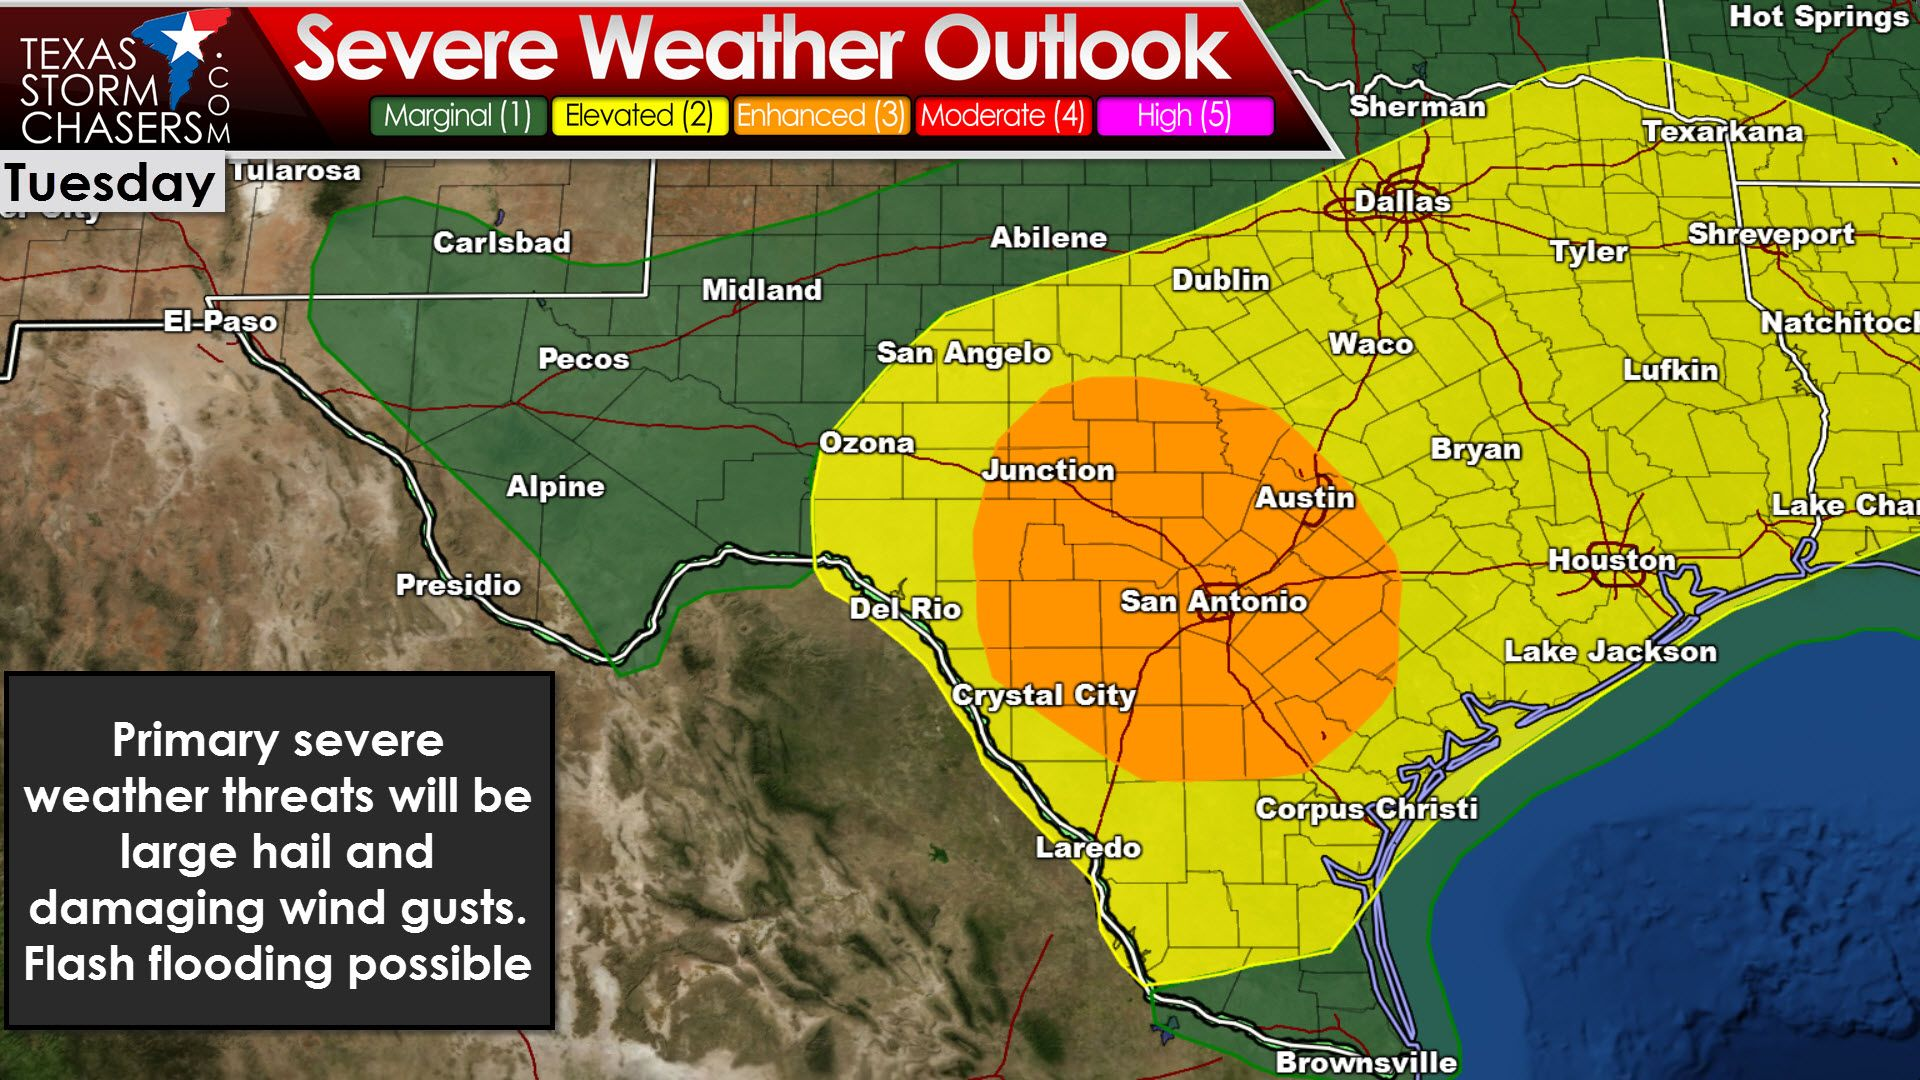 Isolated But Intense Severe Thunderstorms Are Possible Late This Afternoon Evening In The Northern Eastern Texas Panha Texas Storm Severe Storms Severe Weather